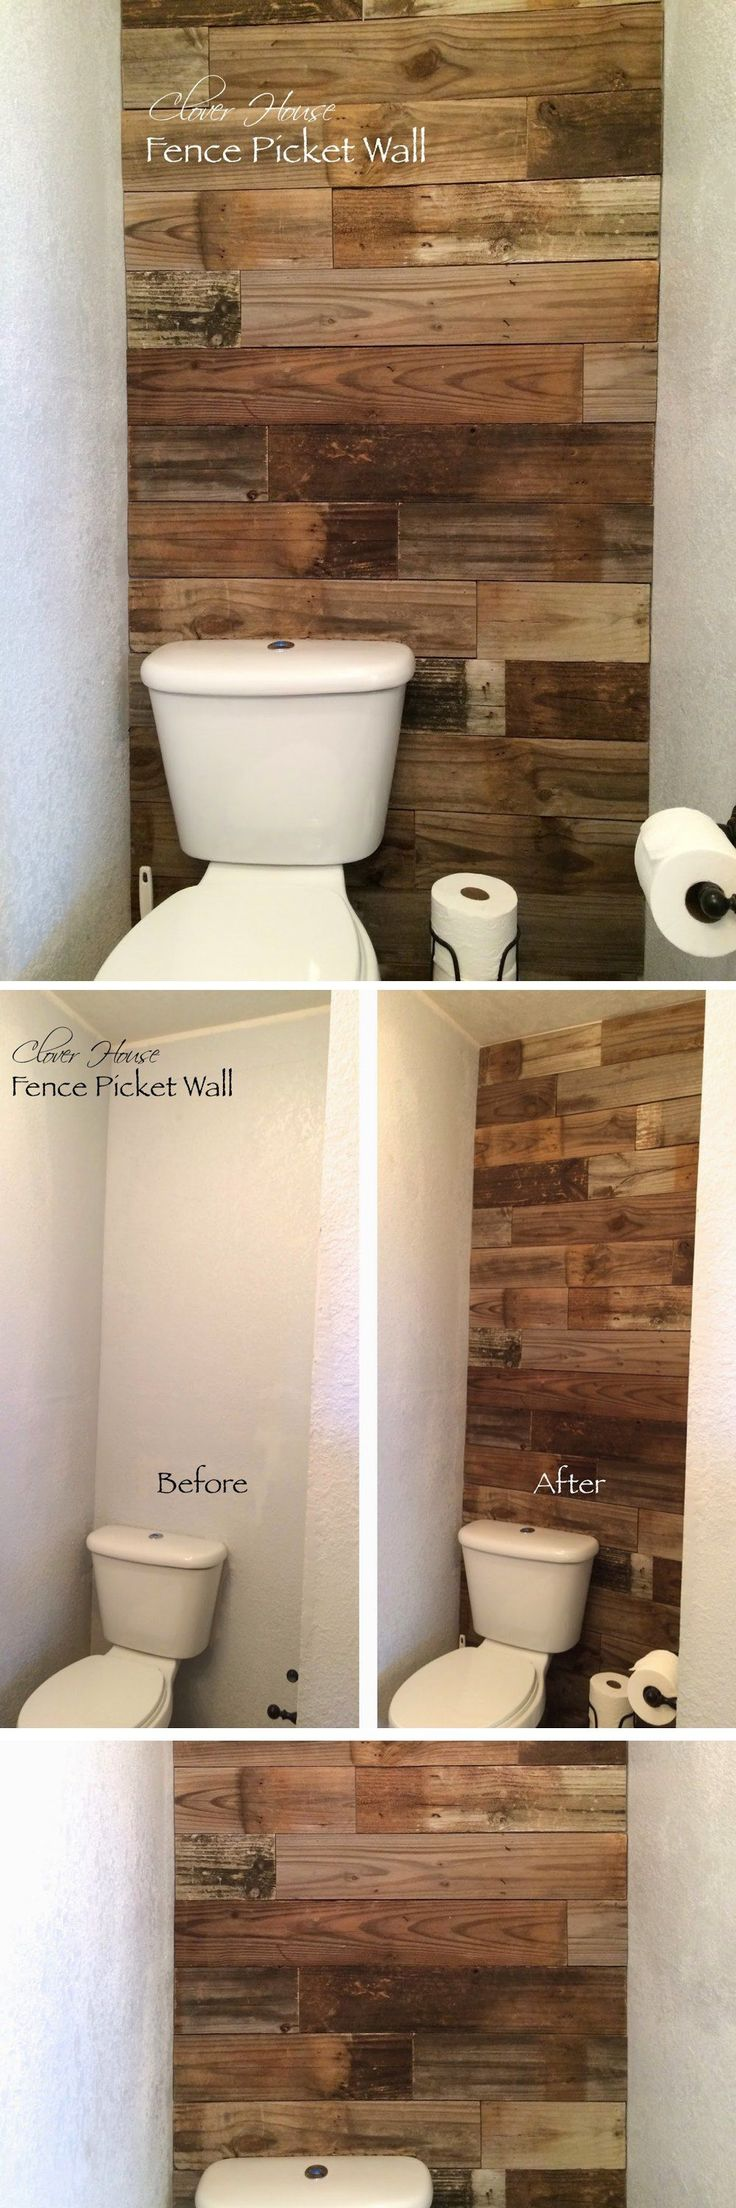 Bathroom Fence Picket Wall